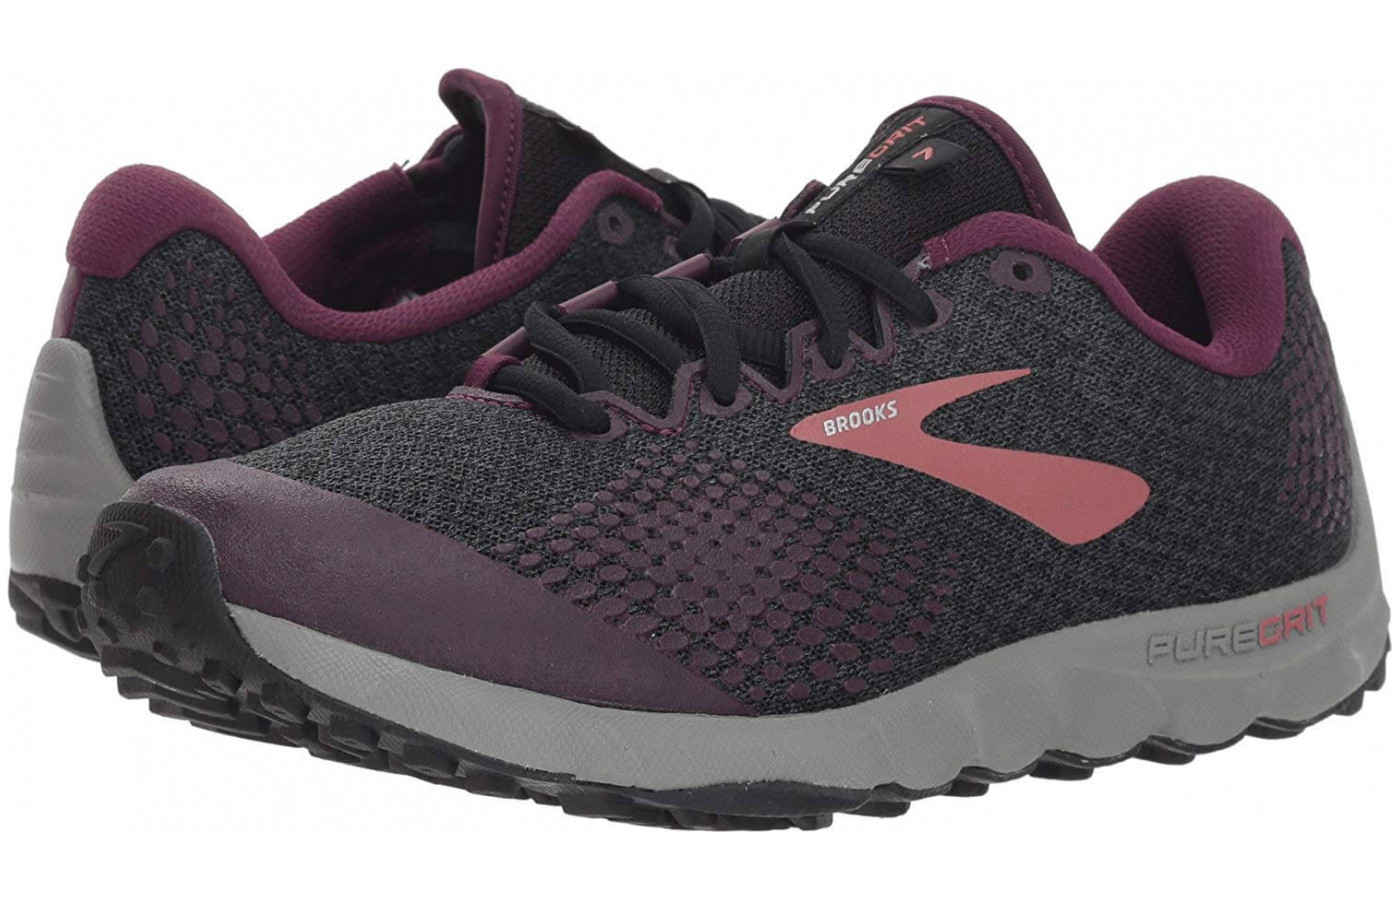 c7725c081be96 Brooks PureGrit 7 Reviewed - To Buy or Not in May 2019